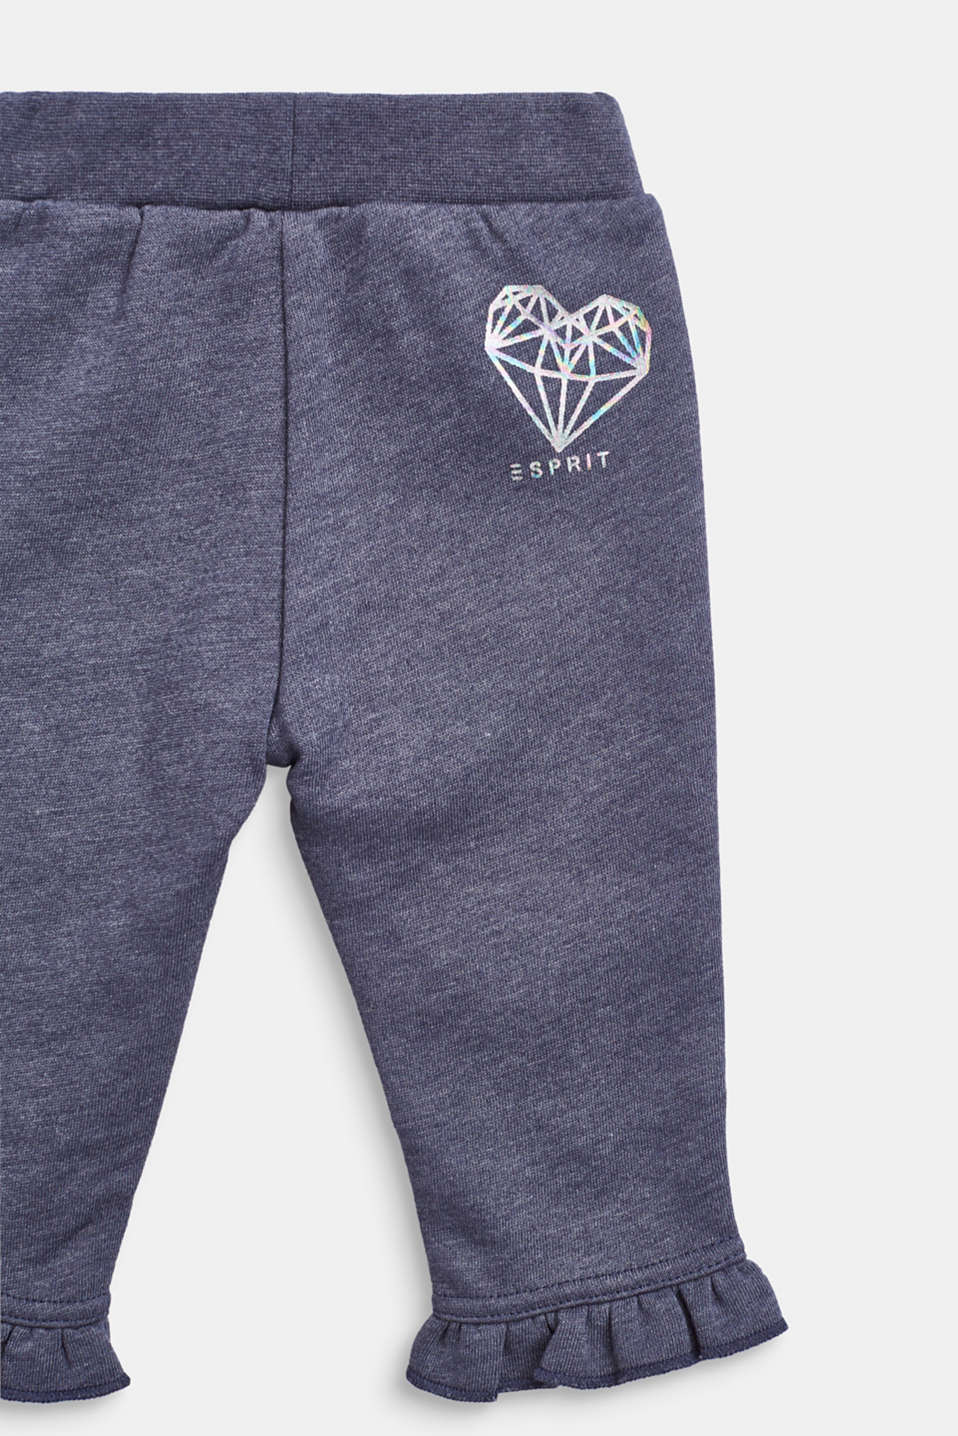 Tracksuit bottoms with a shiny print and frills, LCMIDNIGHT BLUE, detail image number 2